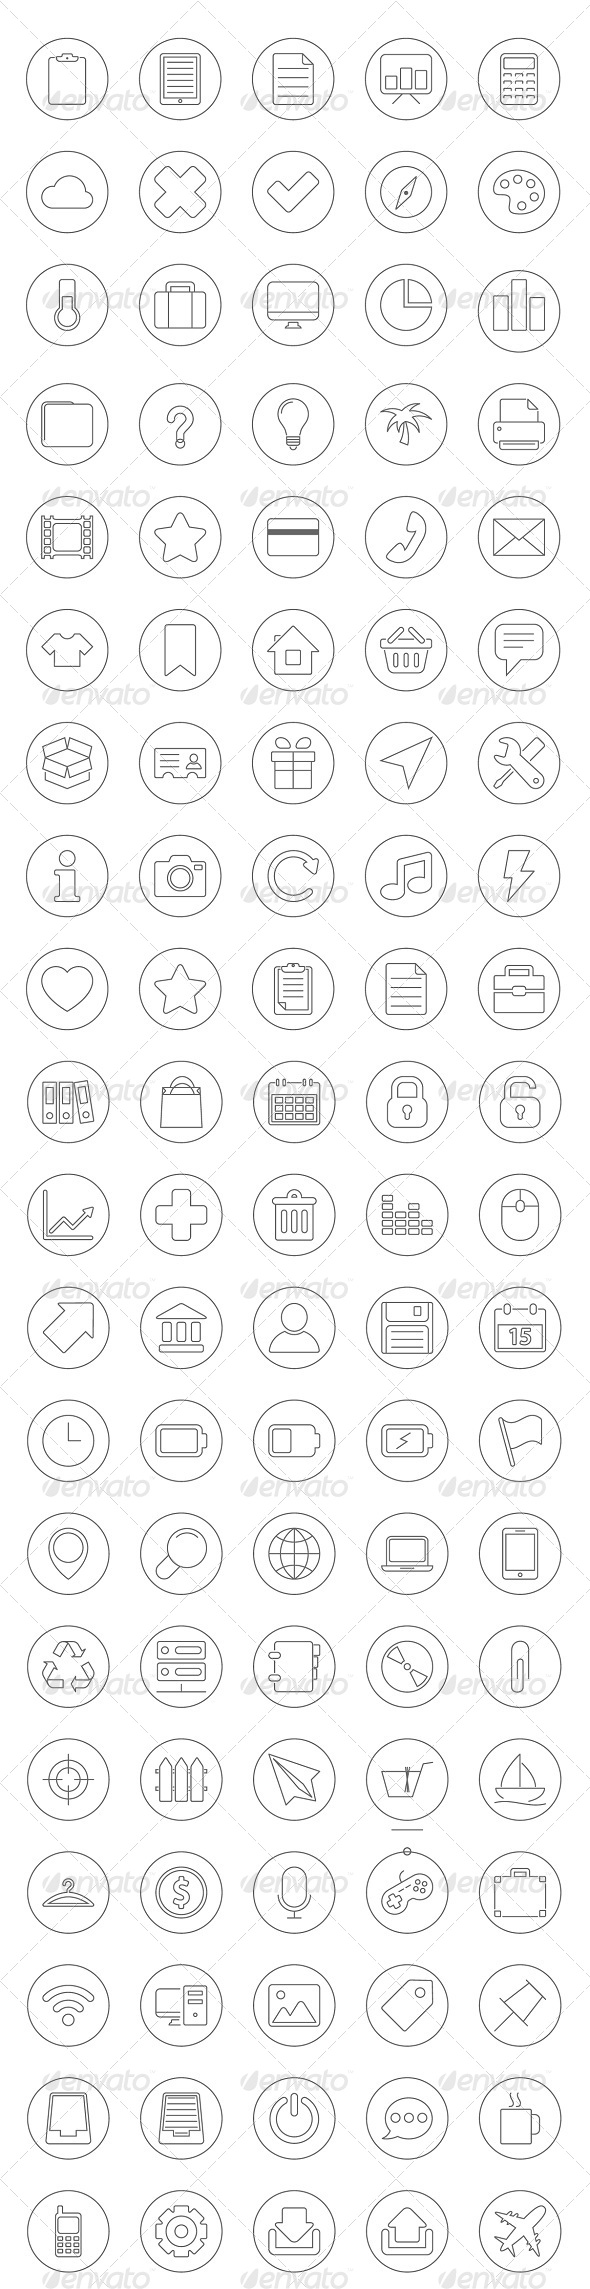 GraphicRiver 100 Universal Icons Set 6518724